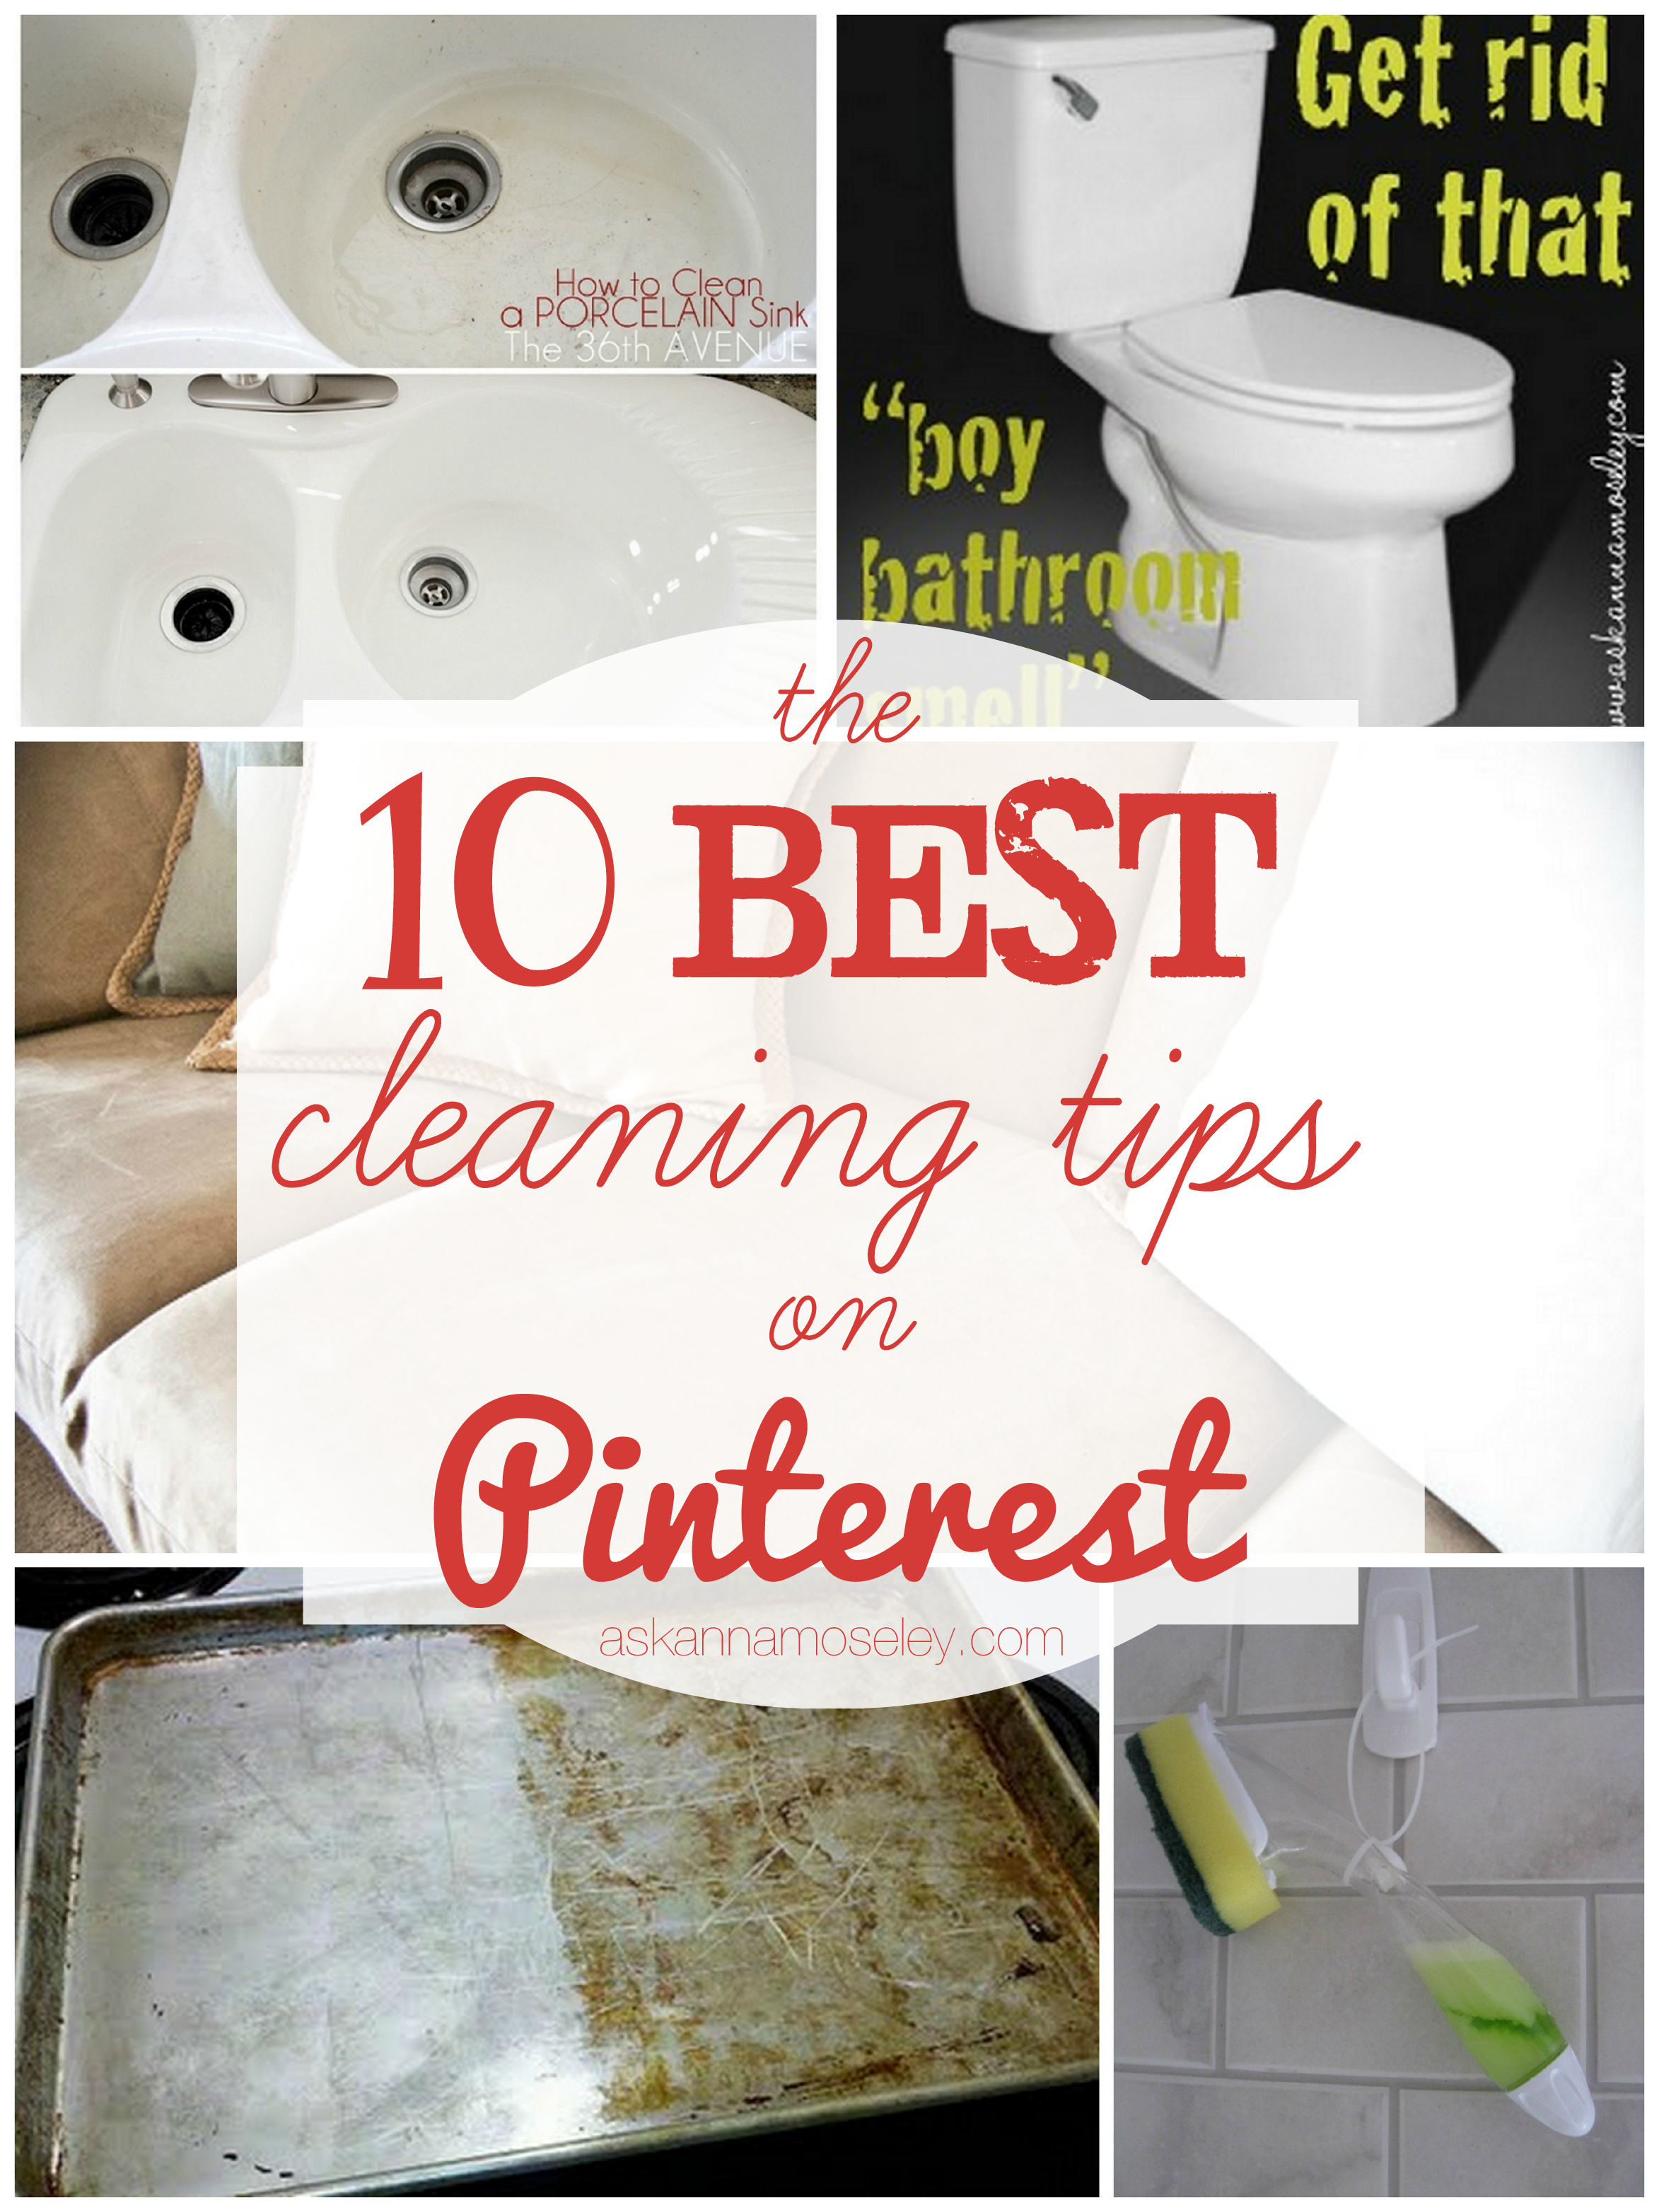 The Best Cleaning Tips on Pinterest